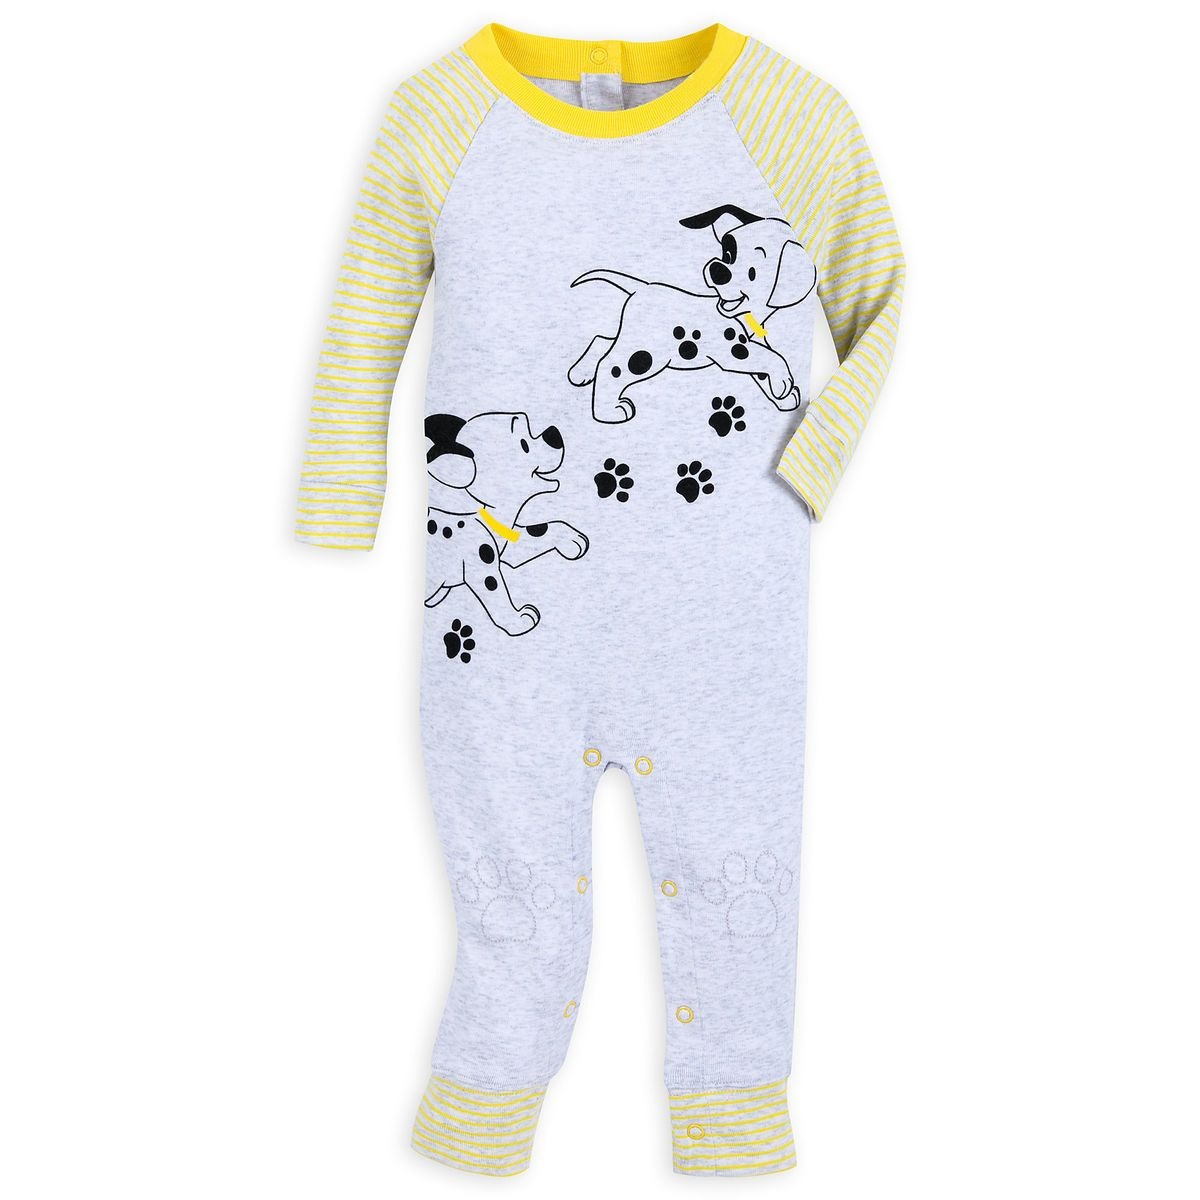 Product Image Of Lucky And Patch Stretchie For Baby 101 Dalmatians 1 Kids Disney Outfits Baby Boy Outfits Paisley Clothes